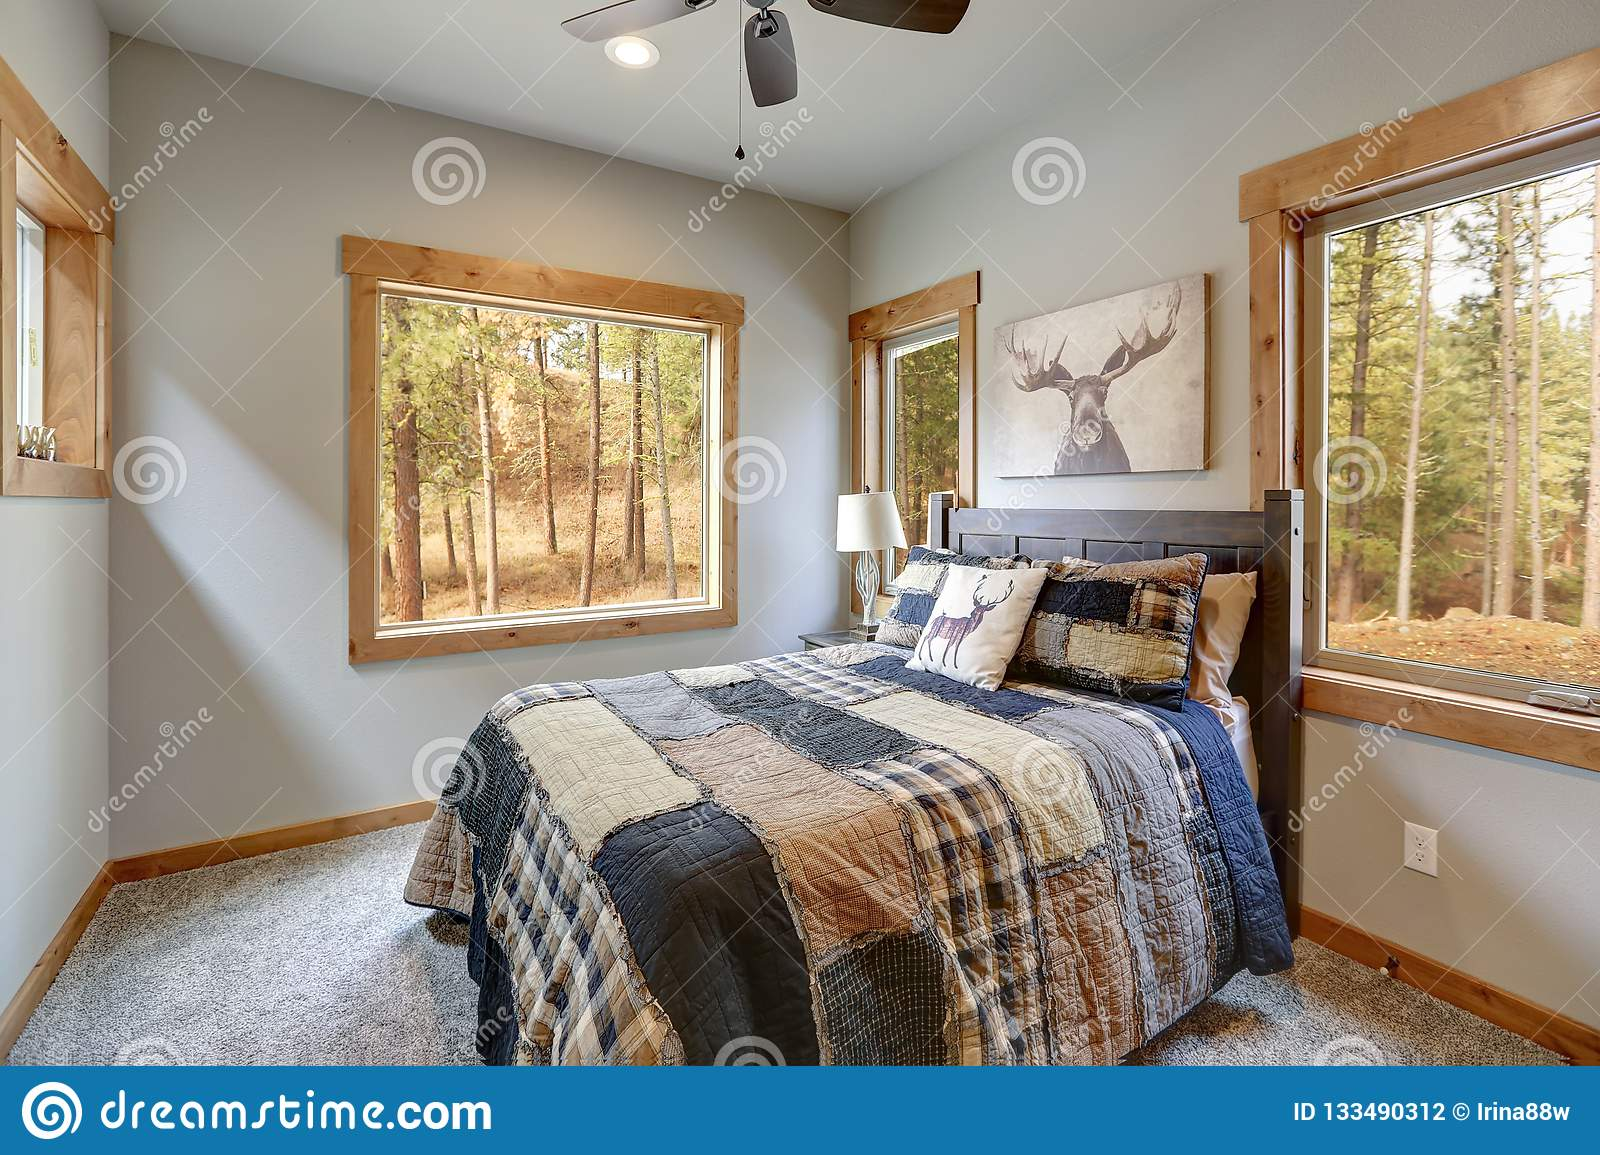 Angoliera in legno stile country. Country Style Bedroom With Wooden Bed And Lots Of Windows Stock Photo Image Of Designer Modern 133490312